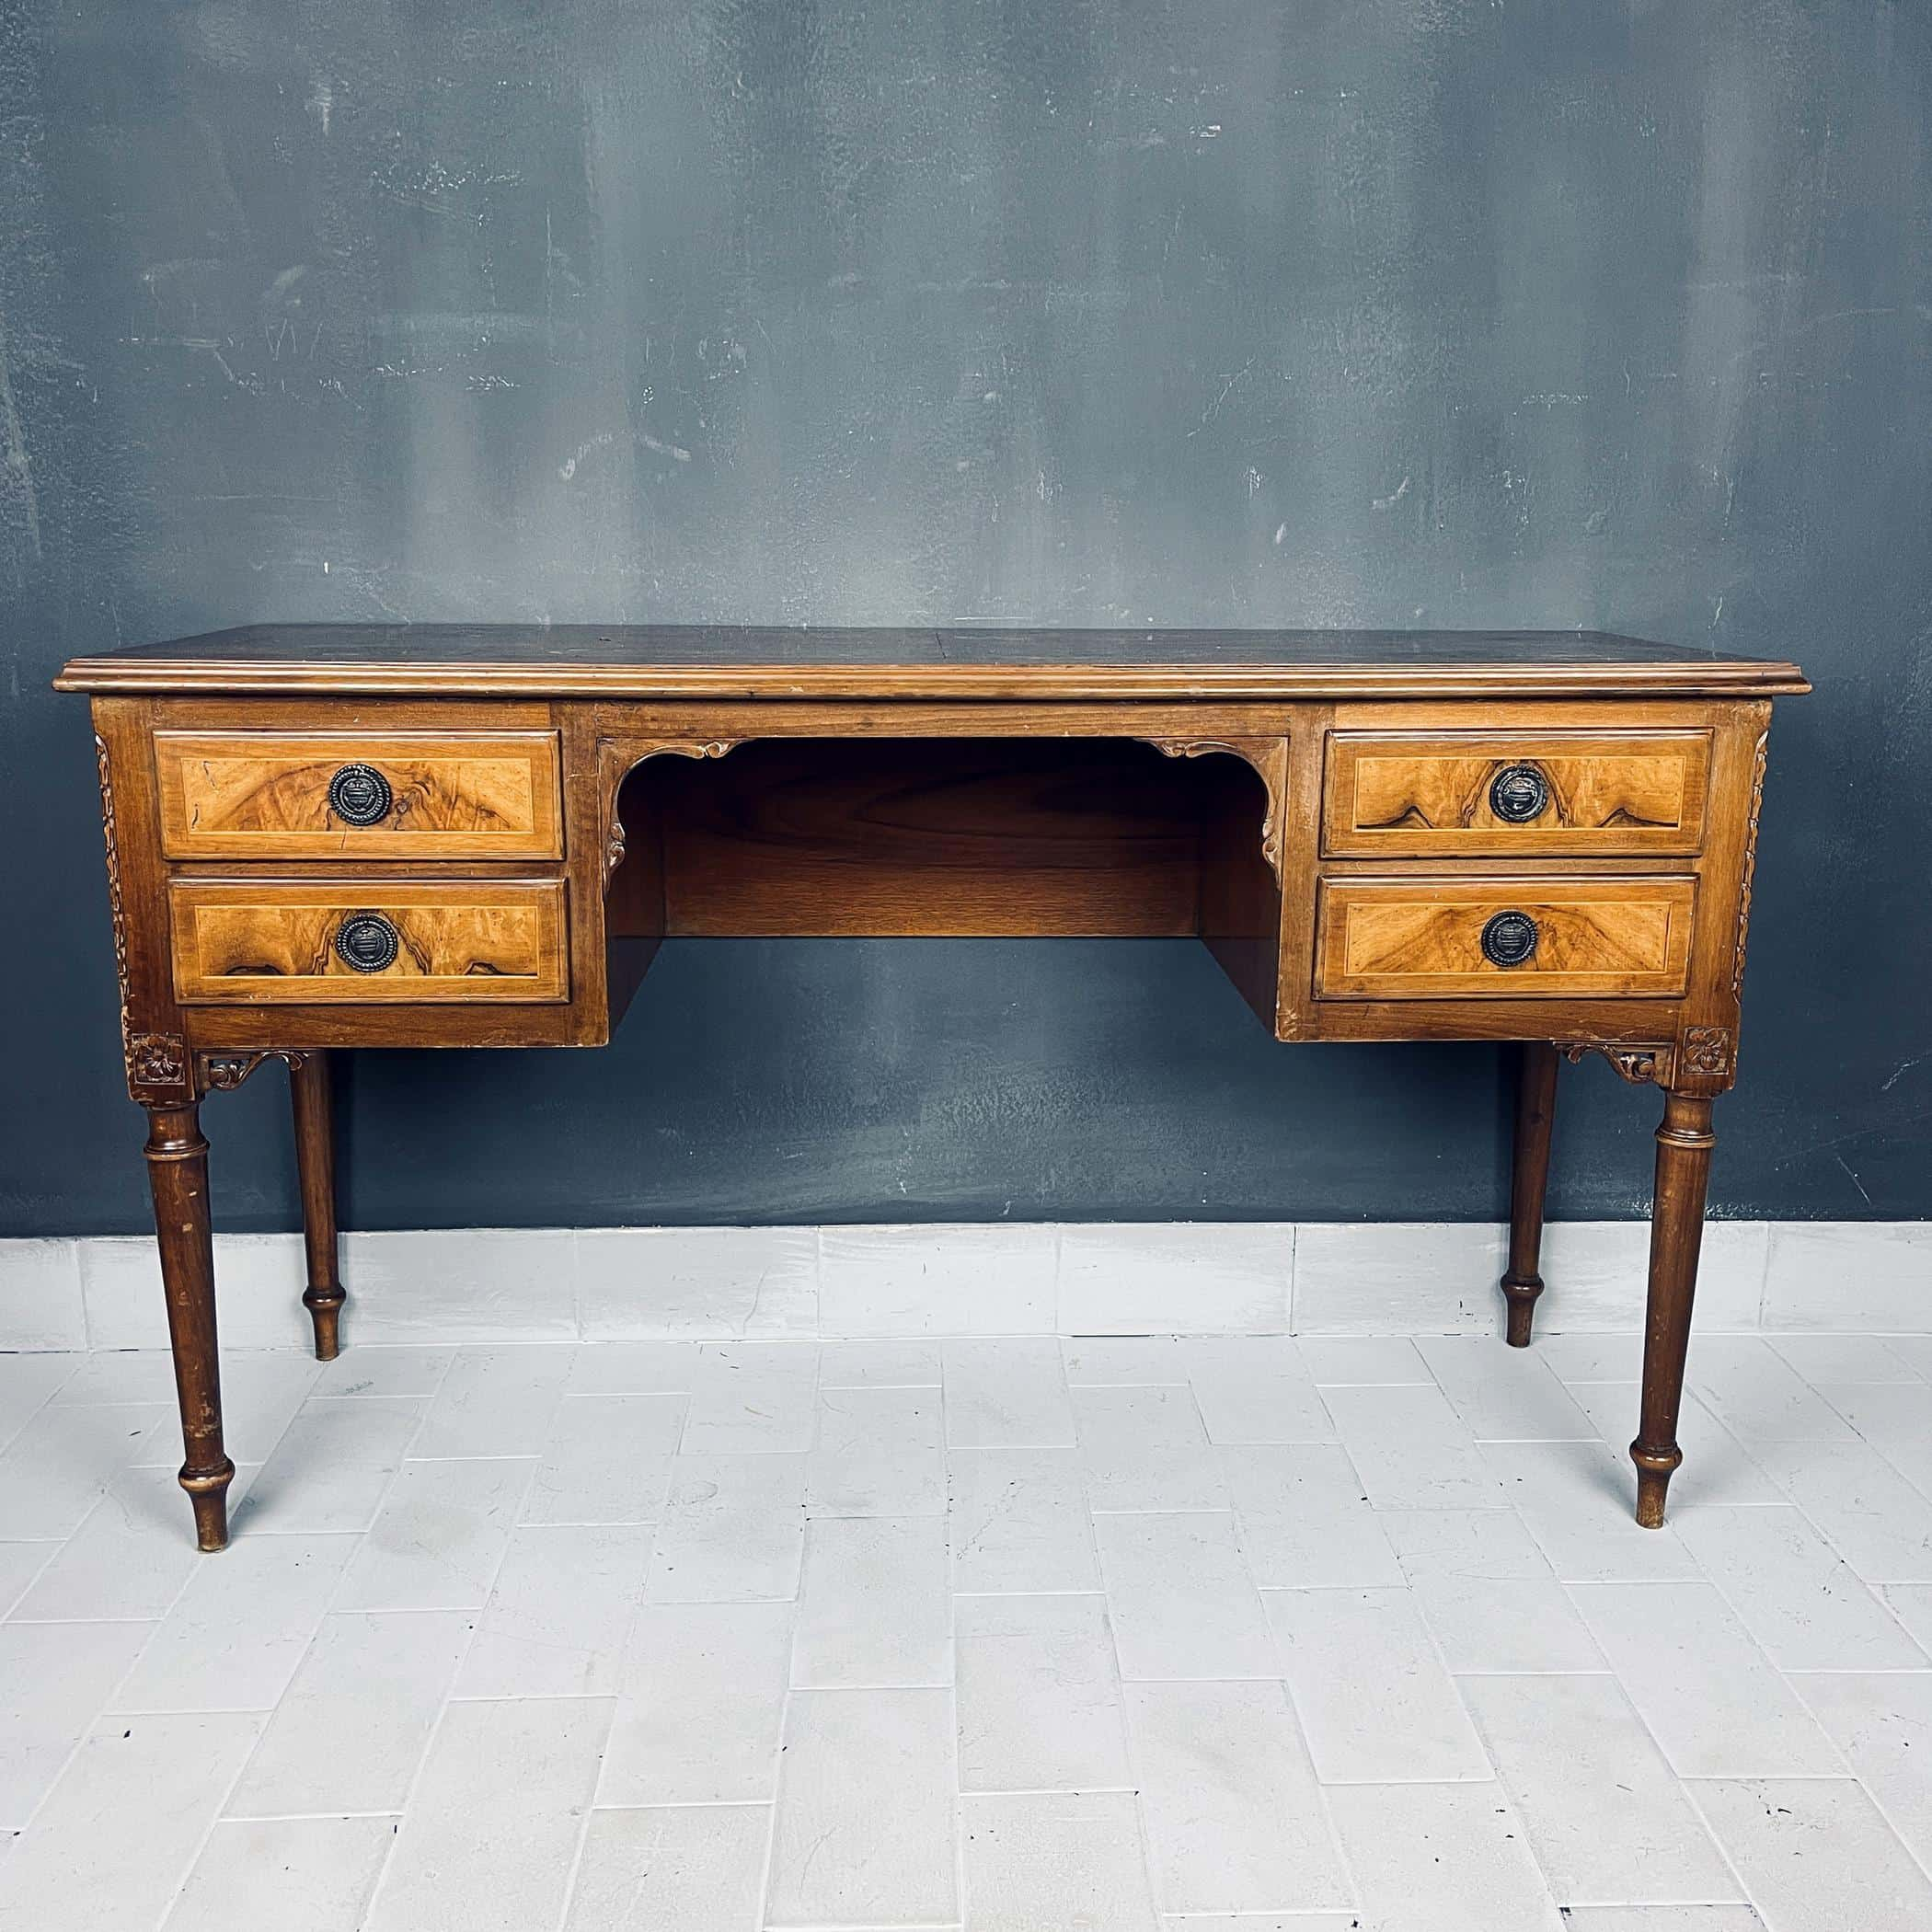 Vintage wood sideboard Italy 1950s venetian wooden console table